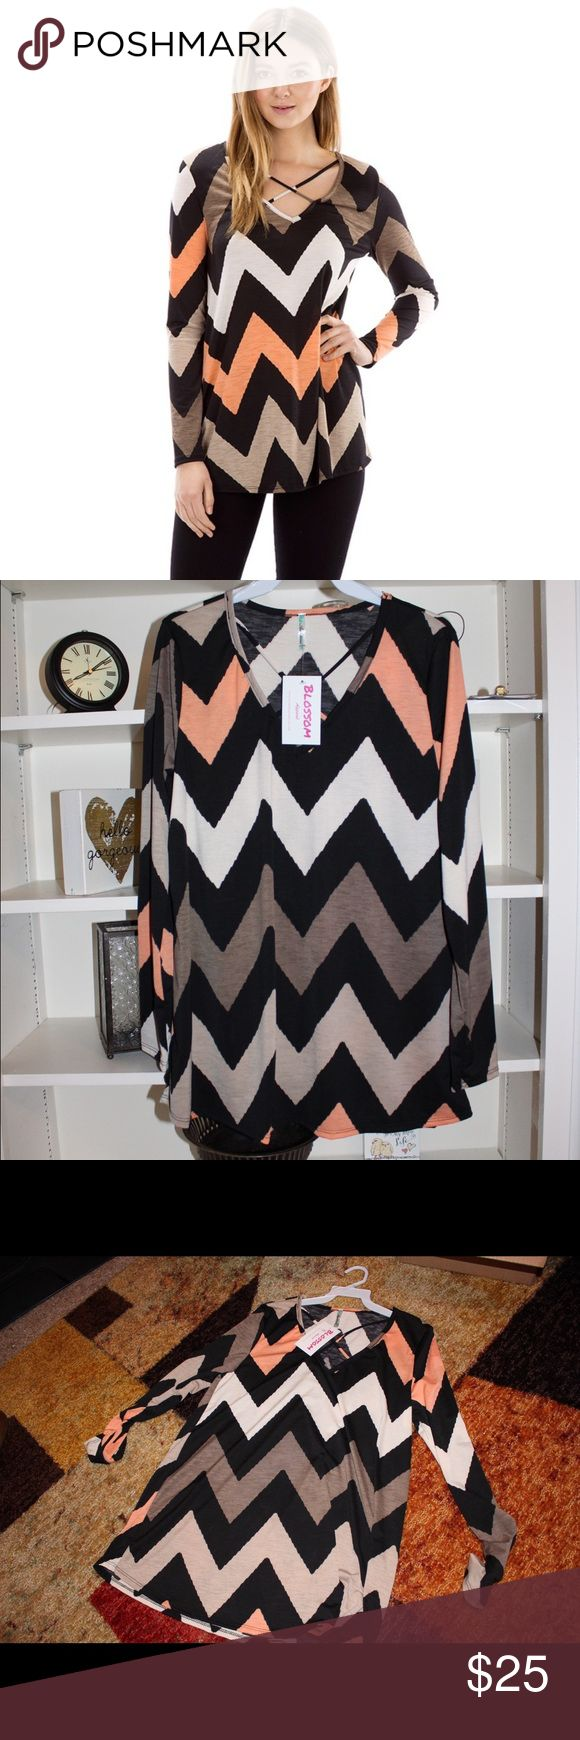 SALE🌟🌟Chevron top with strapping front Brand new with tags! I kept one for myself cause I love it that much!  **sizes available are 1 SMALL and 1 MEDIUM 95% polyester/ 5% spandex will sell as lot if needed The Blossom Apparel Tops Blouses